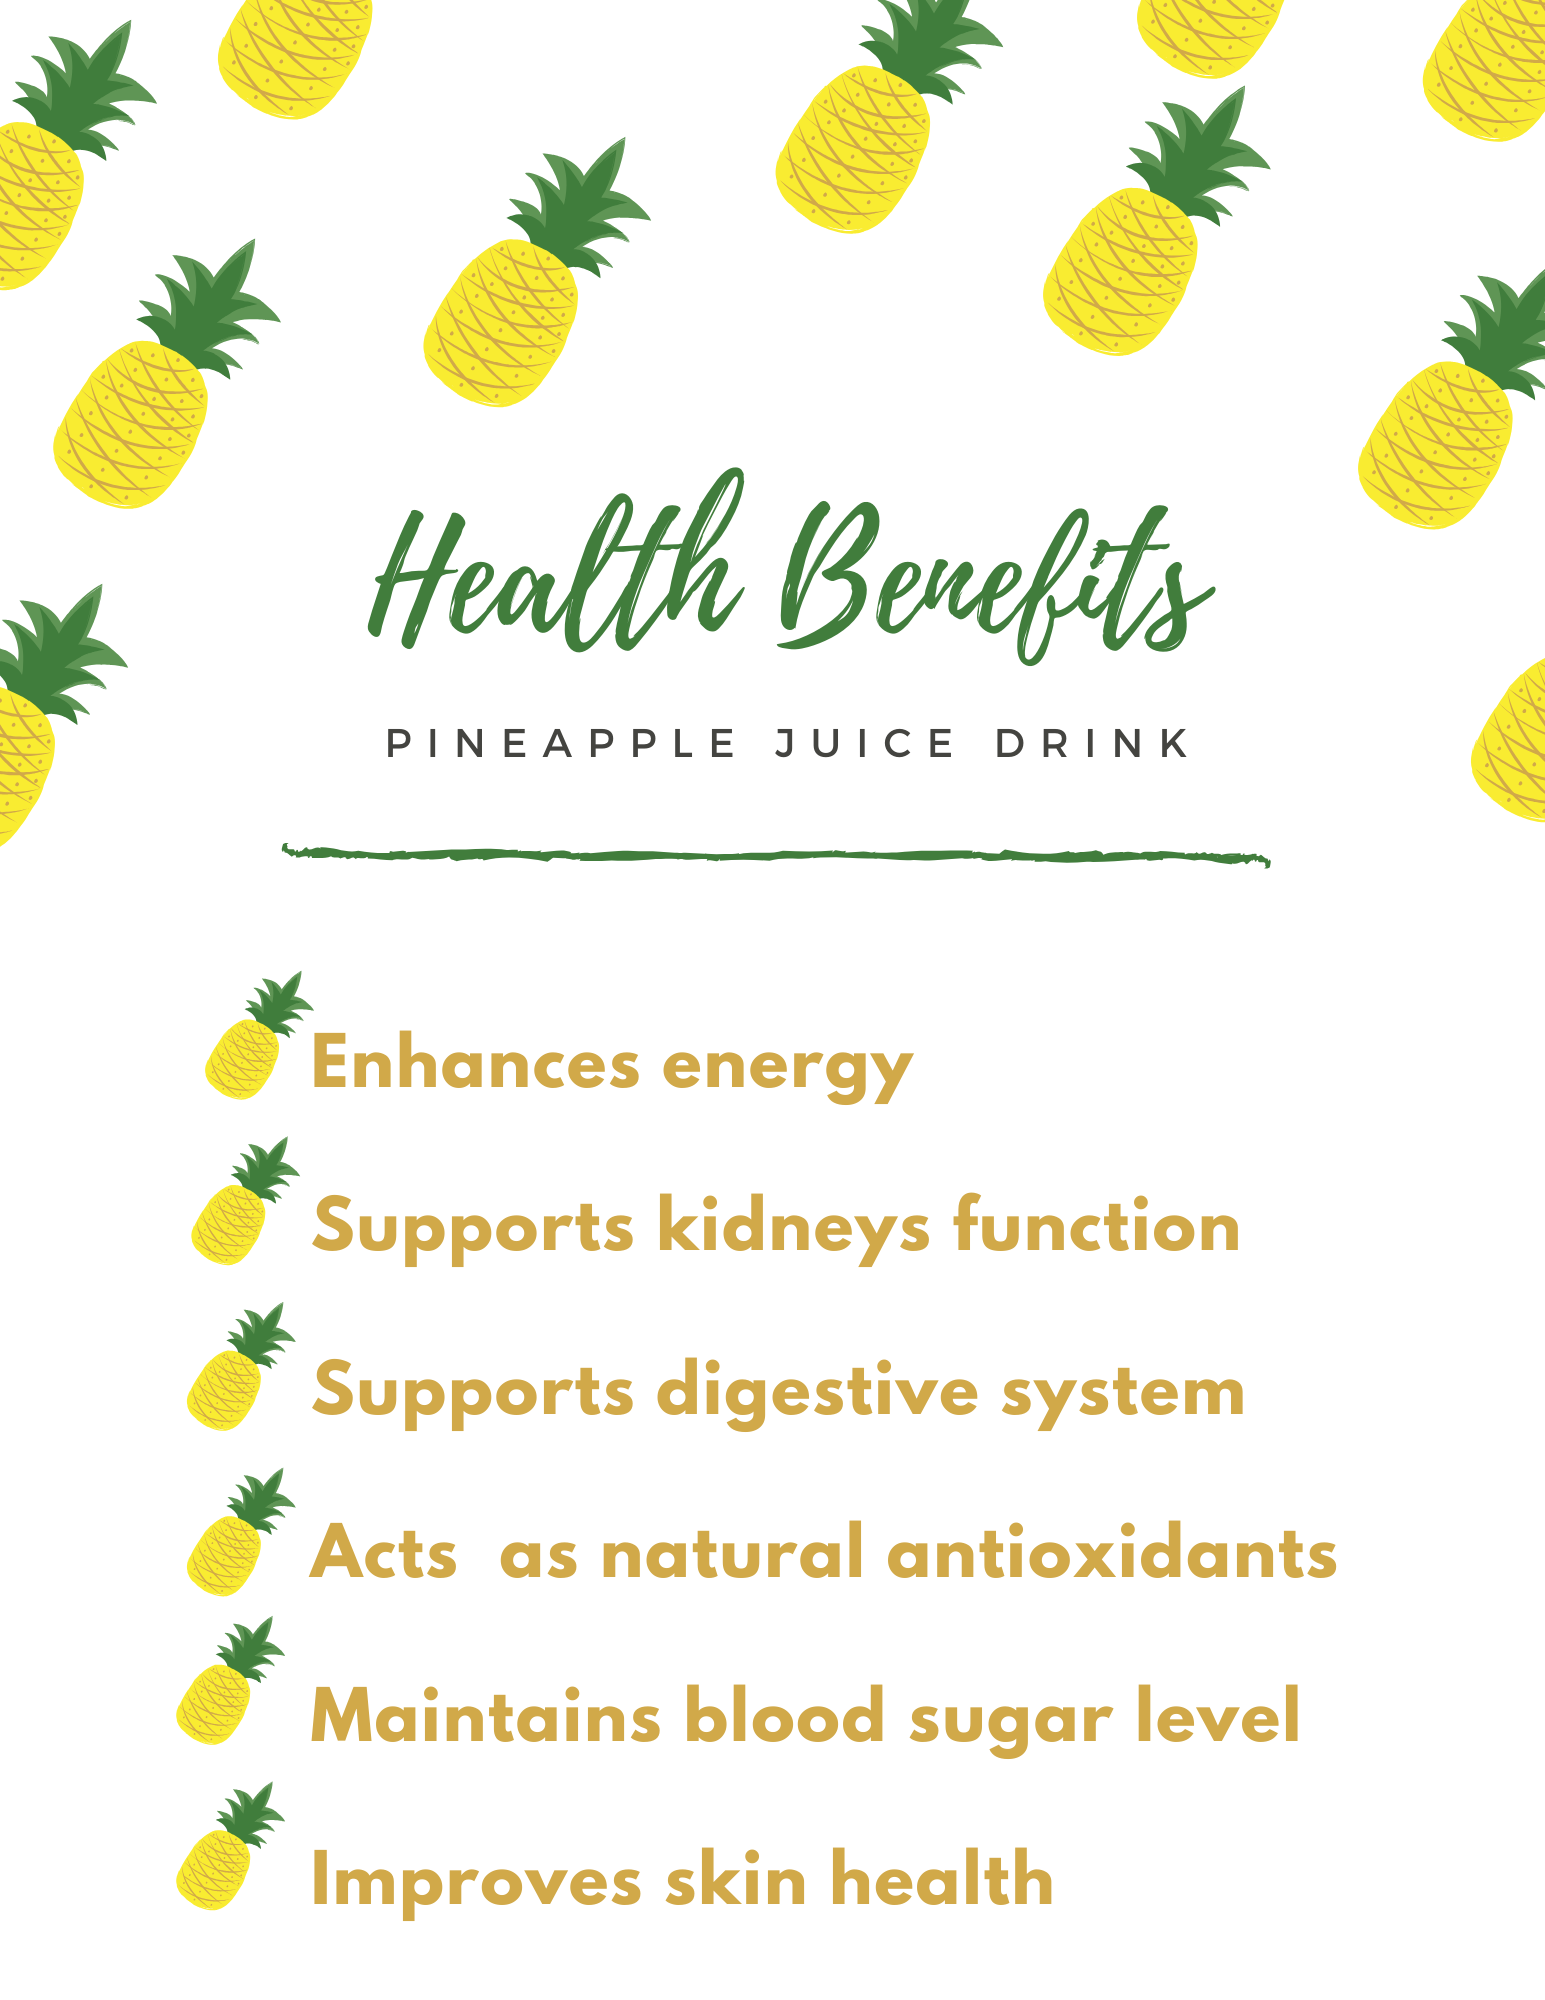 Pineapple Juice Drink is very good for your health